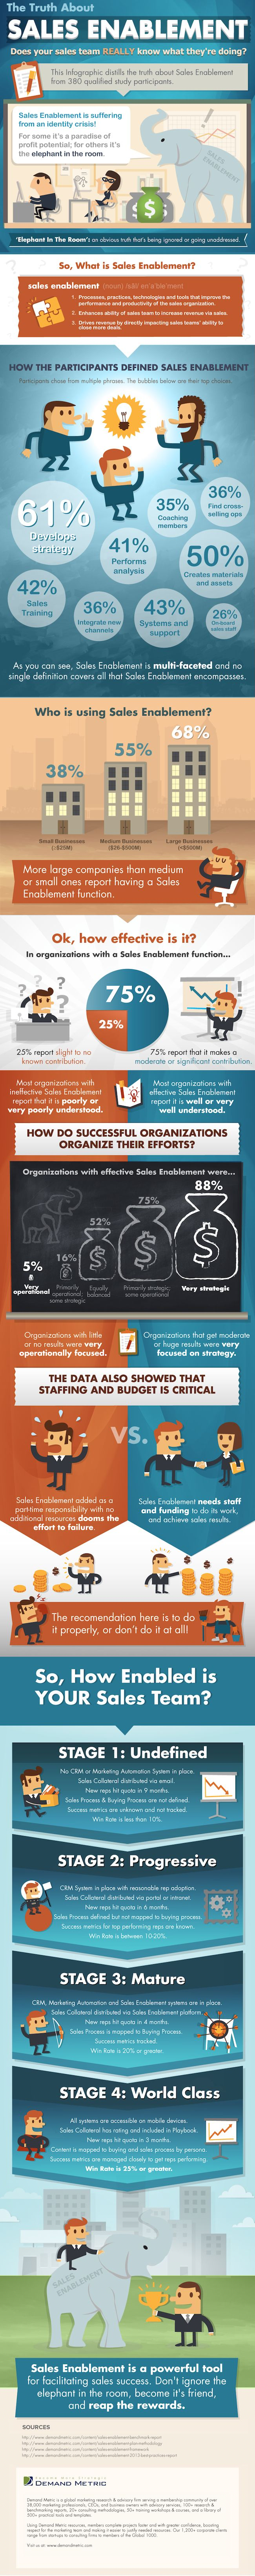 What is sales enablement? A data-backed explanation in this infographic.